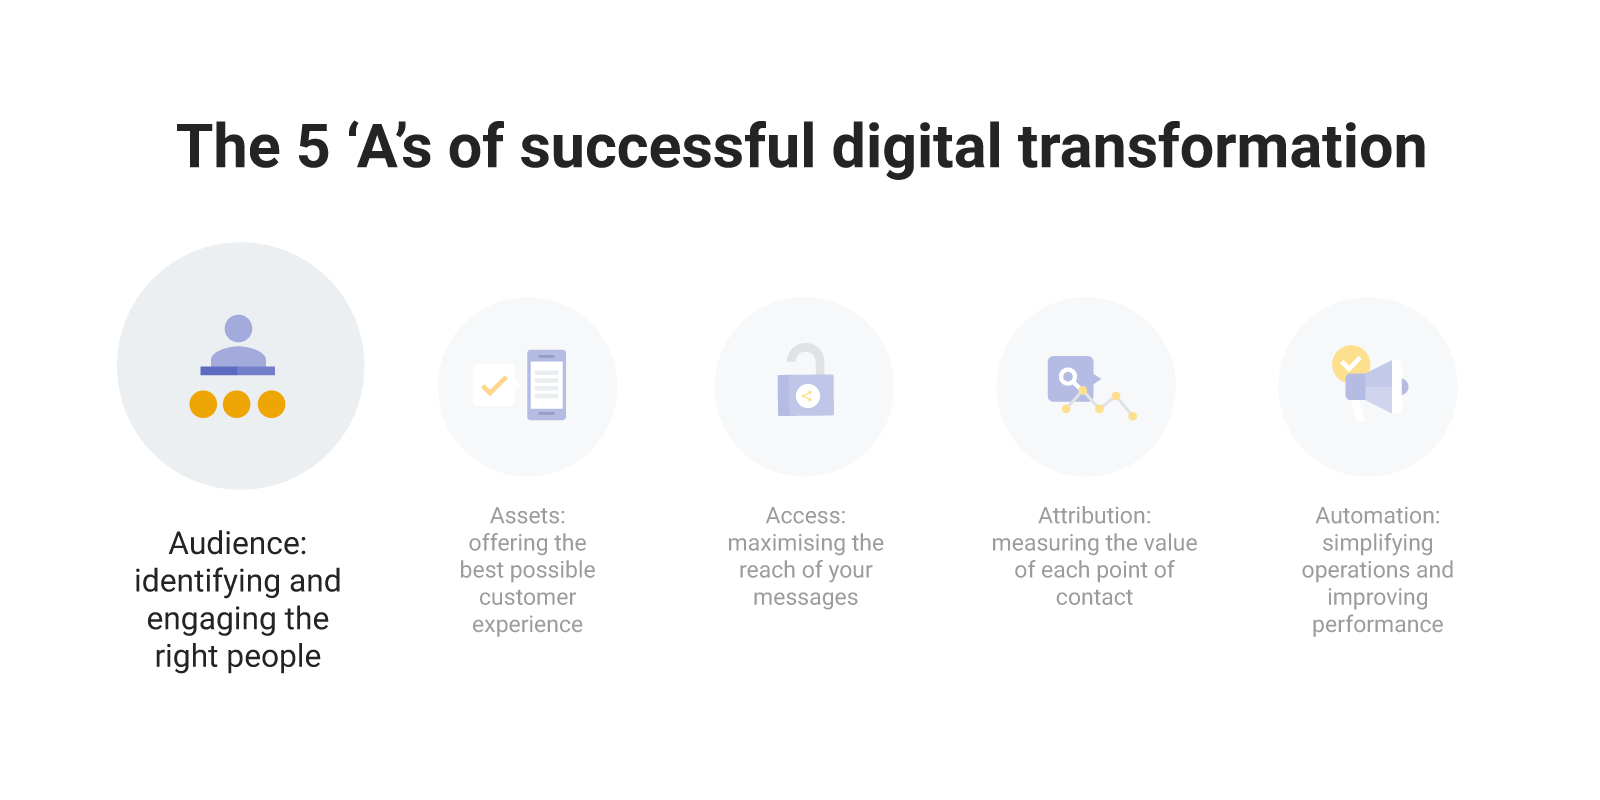 Definition of 'Audience' from the 5 As of digital marketing transformation